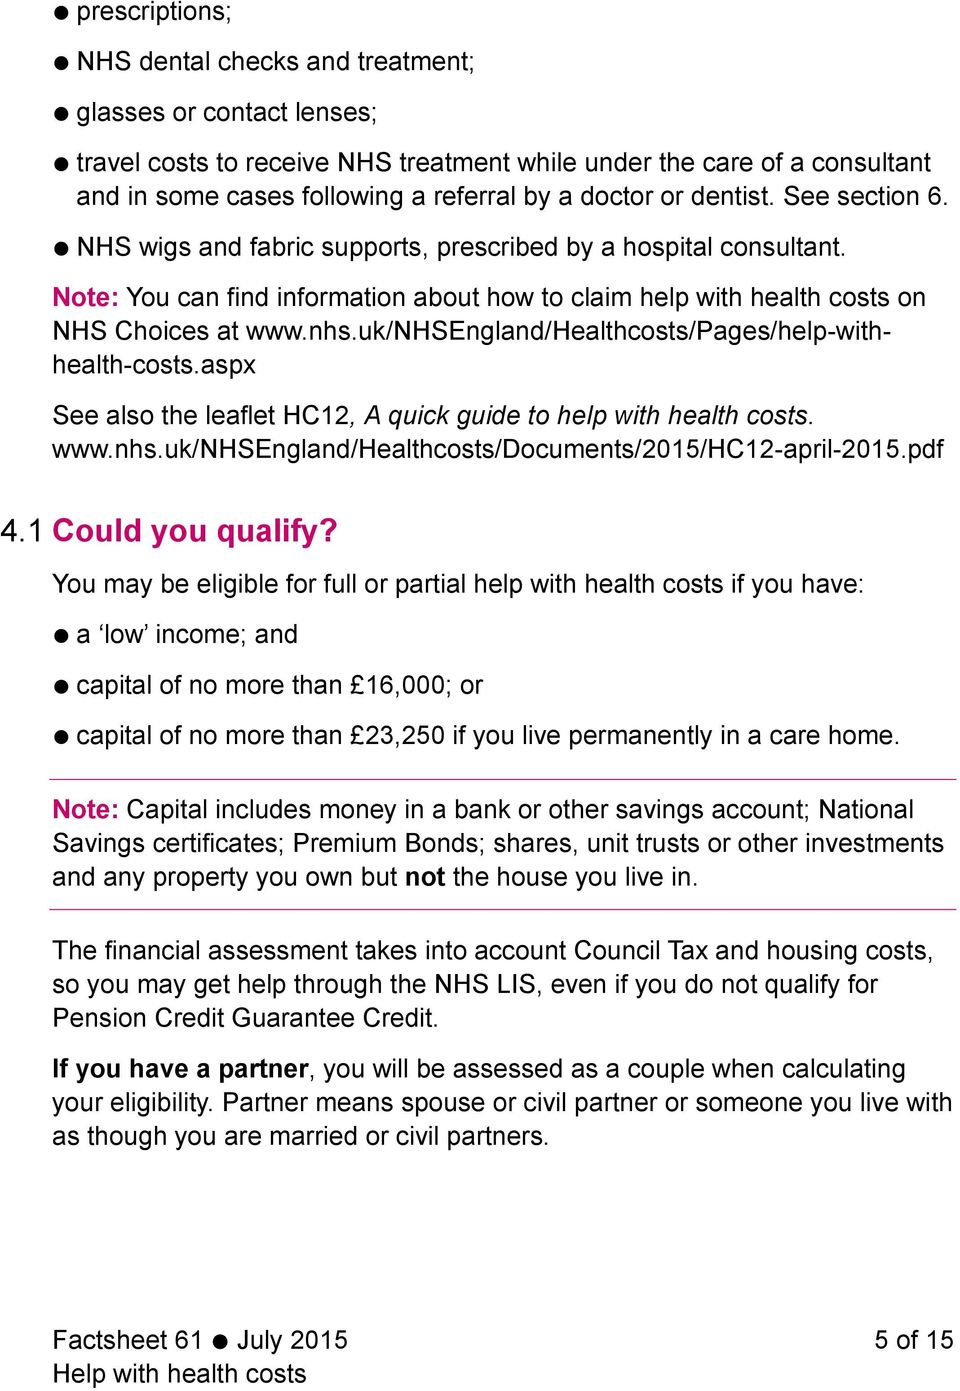 uk/nhsengland/healthcosts/pages/help-withhealth-costs.aspx See also the leaflet HC12, A quick guide to help with health costs. www.nhs.uk/nhsengland/healthcosts/documents/2015/hc12-april-2015.pdf 4.